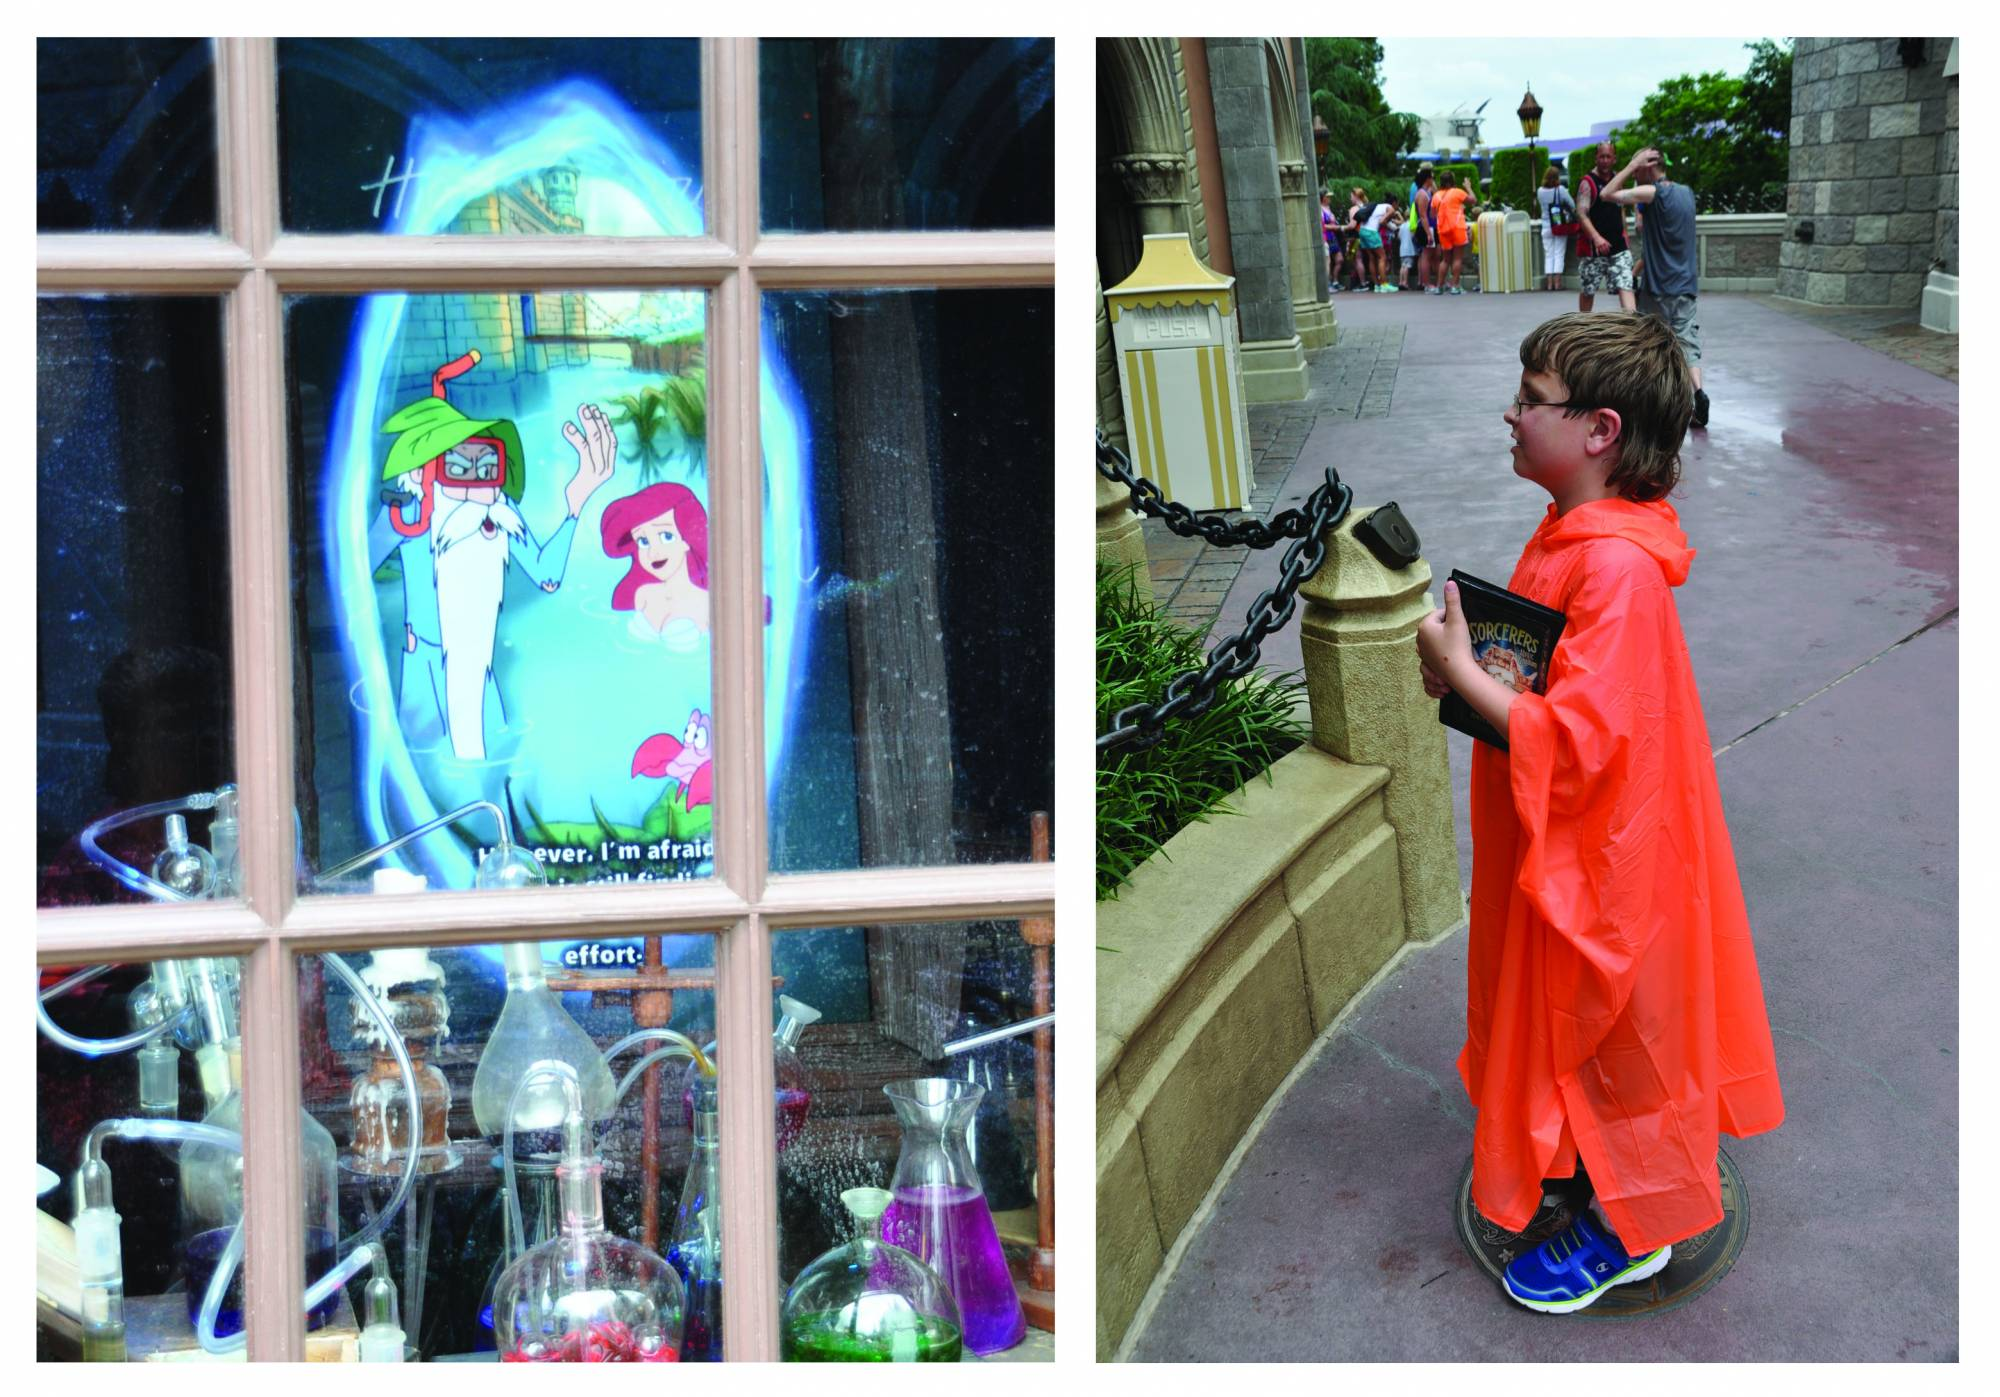 Help save the Magic Kingdom by playing Sorcerers of the Magic Kingdom |PassPorter.com